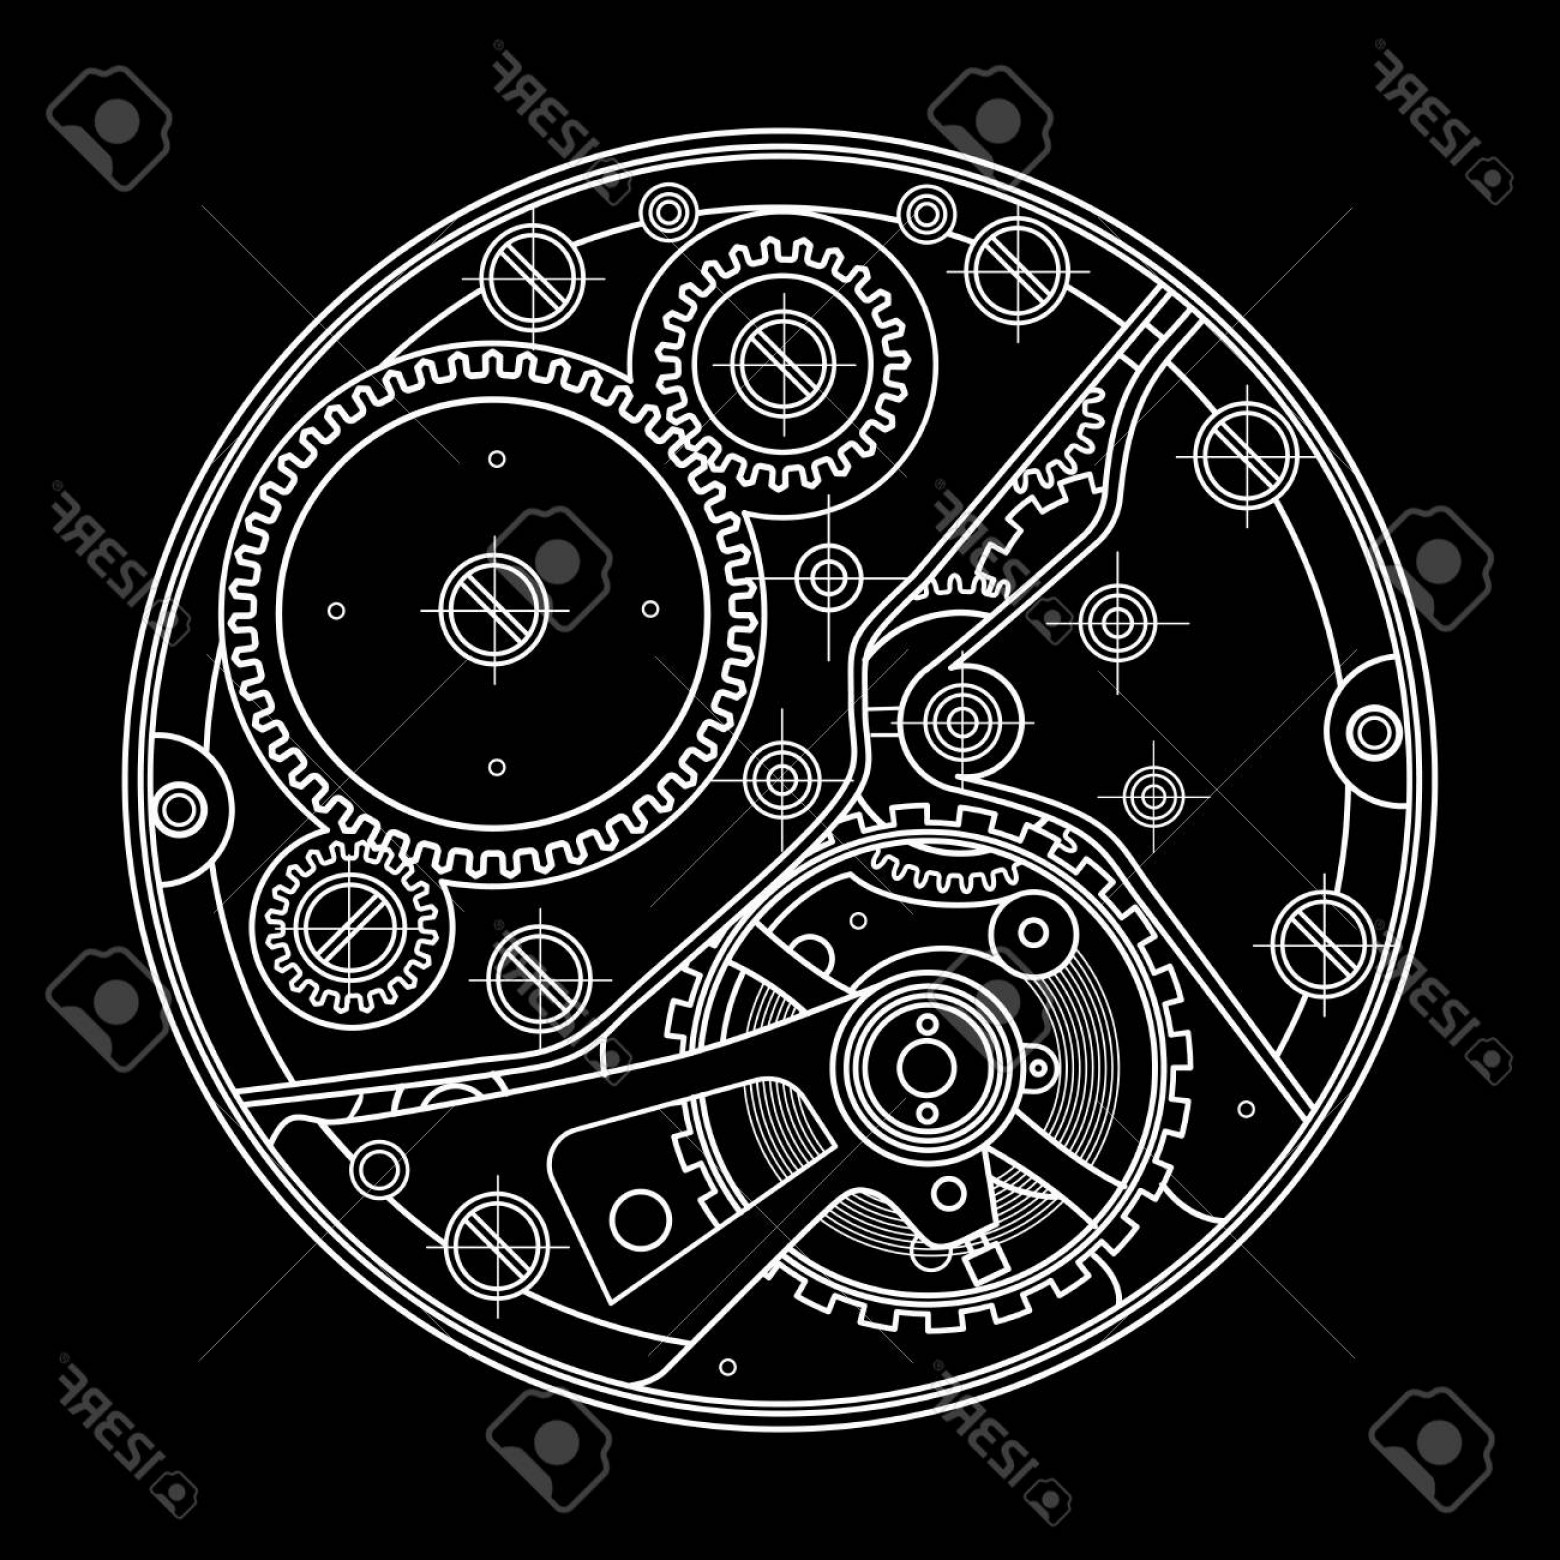 Watch Gears Vector: Photostock Vector Mechanical Watches With Gears Drawing Of The Internal Device